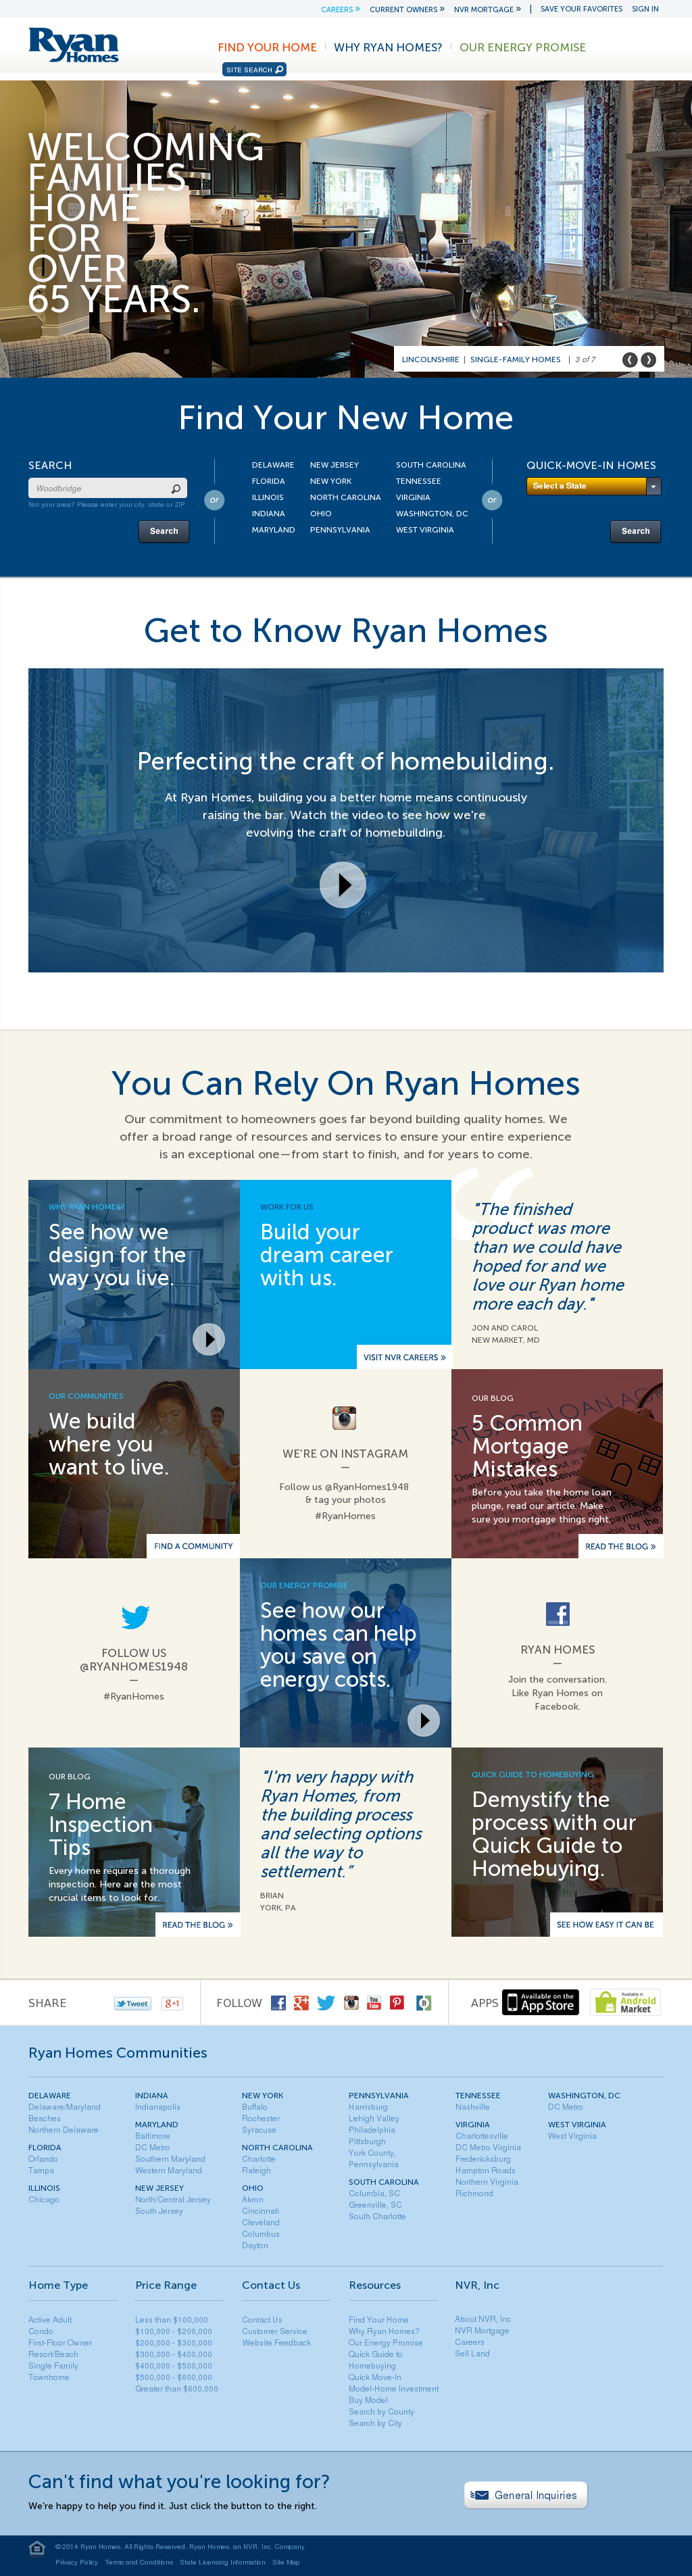 Ryan Homes Competitors, Revenue and